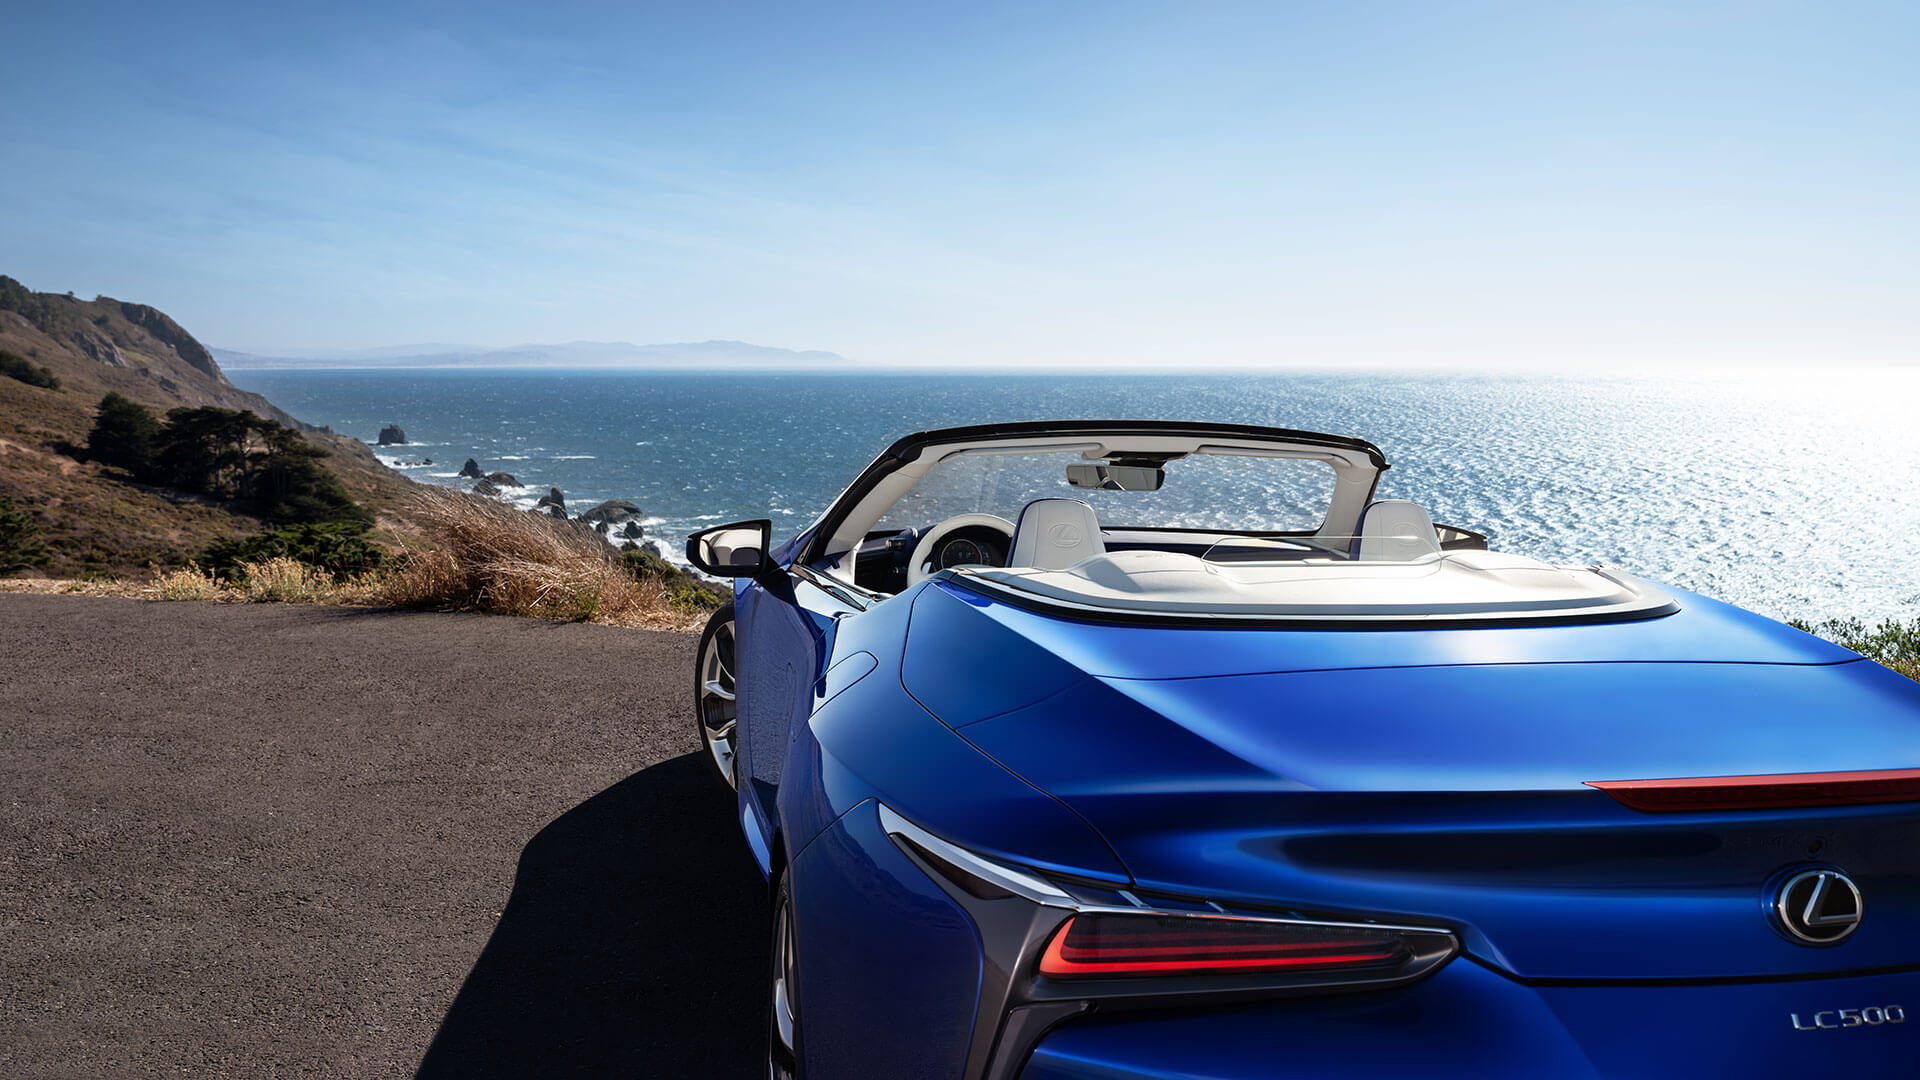 2020 lexus lc covertible gallery 07 exterior